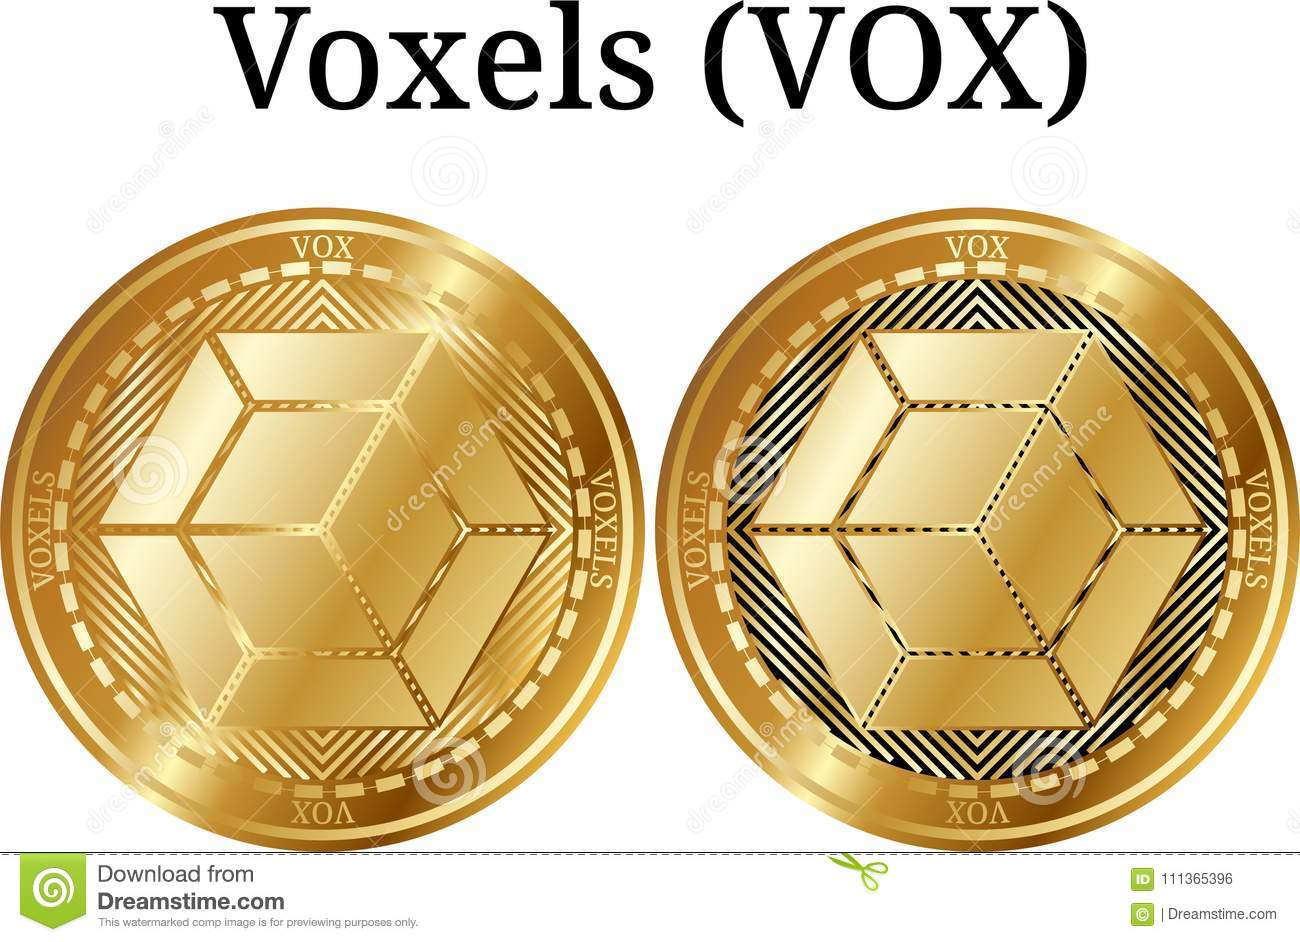 vox cryptocurrency mining